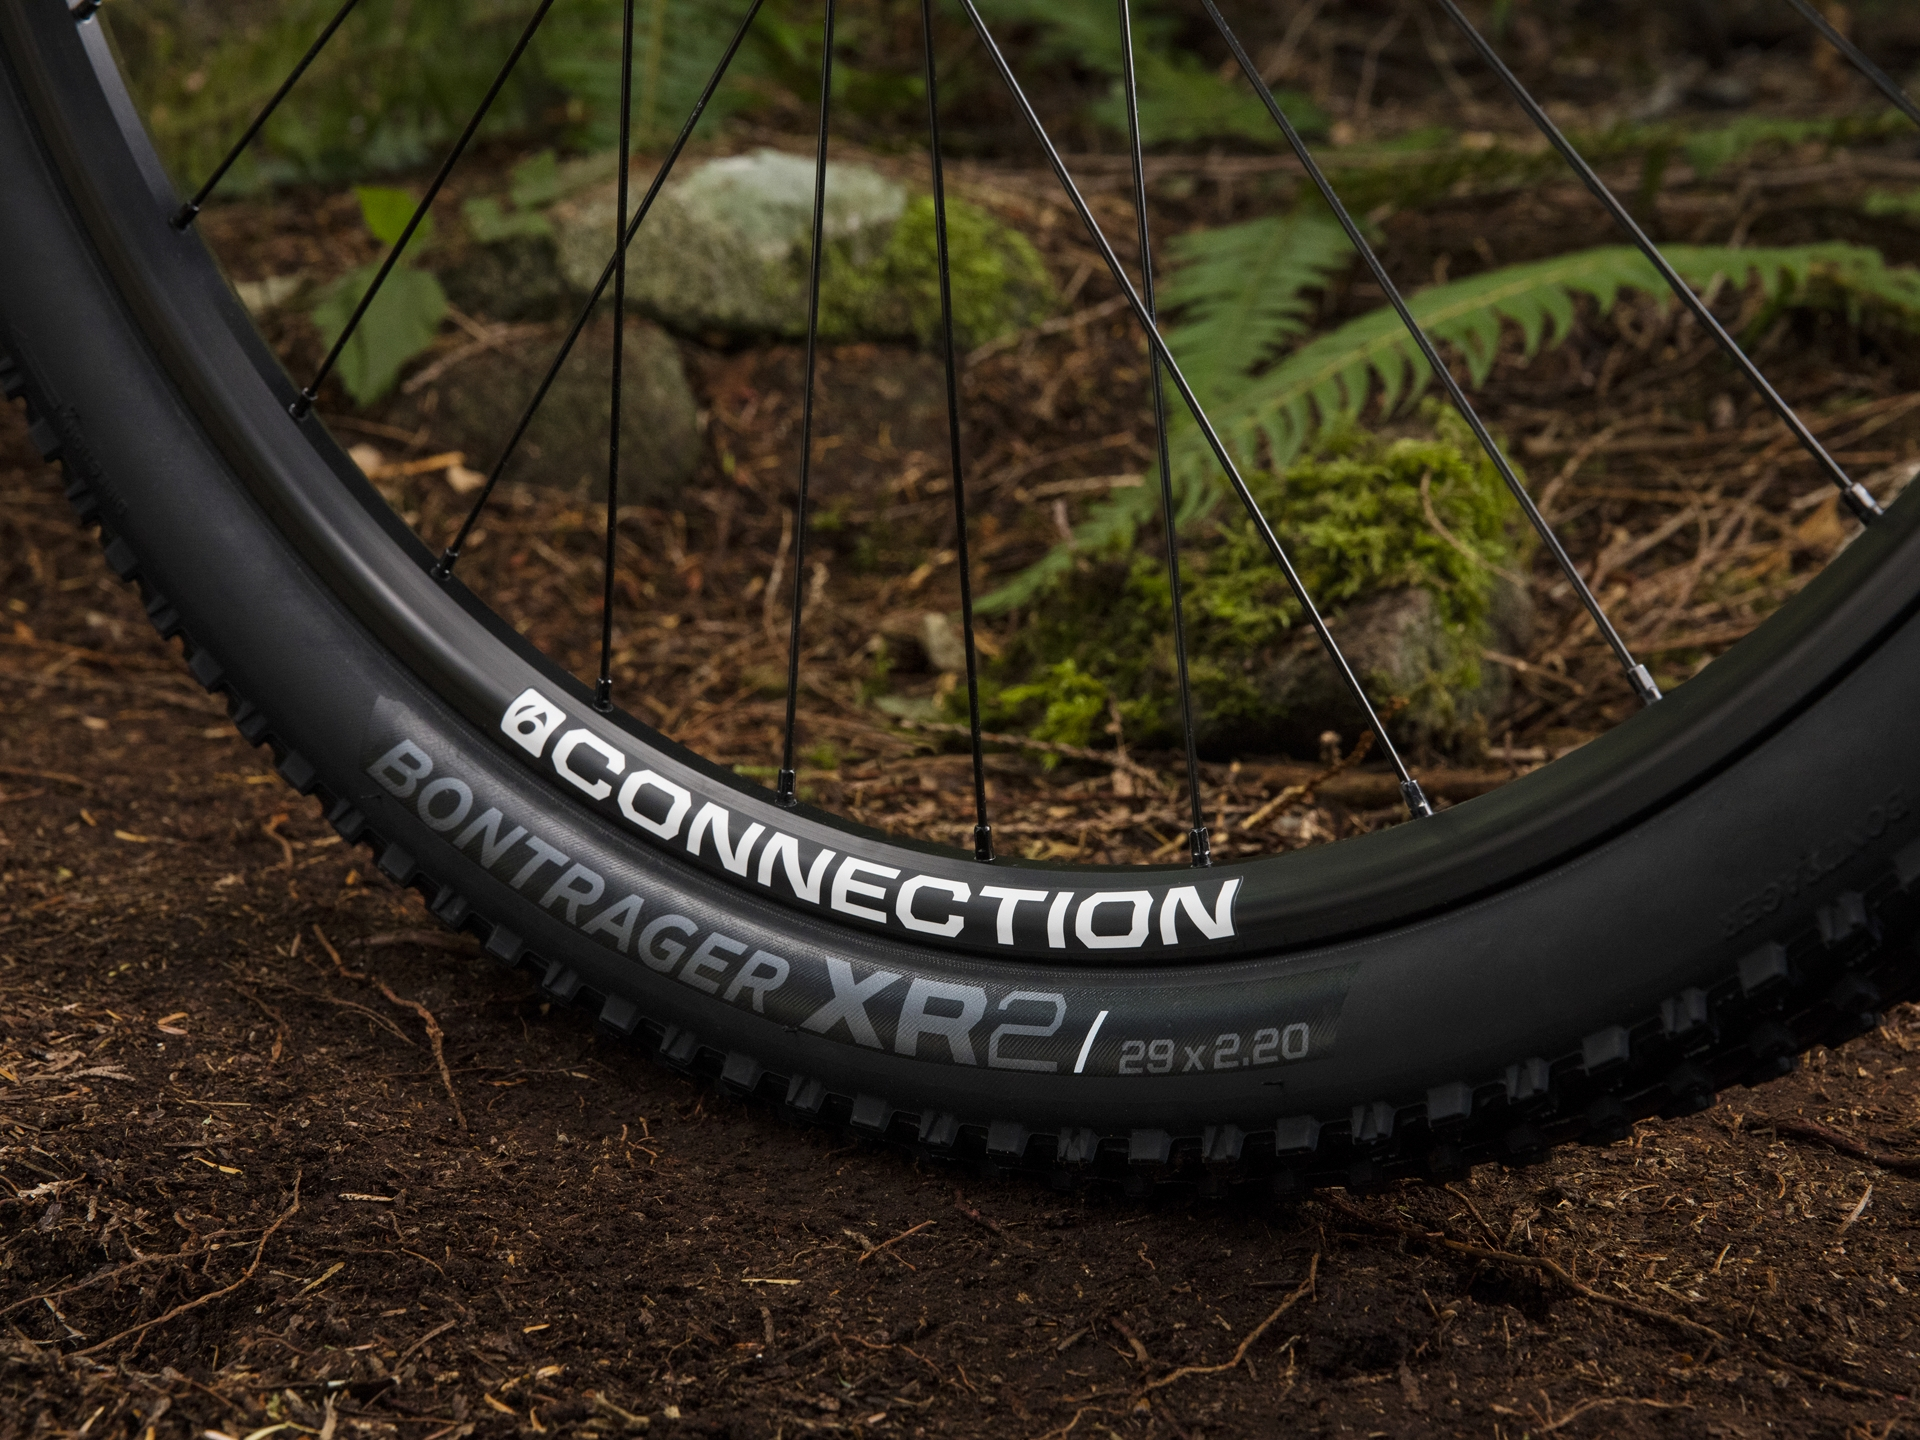 Trek Marlin 5 Bontrager wheels and tires